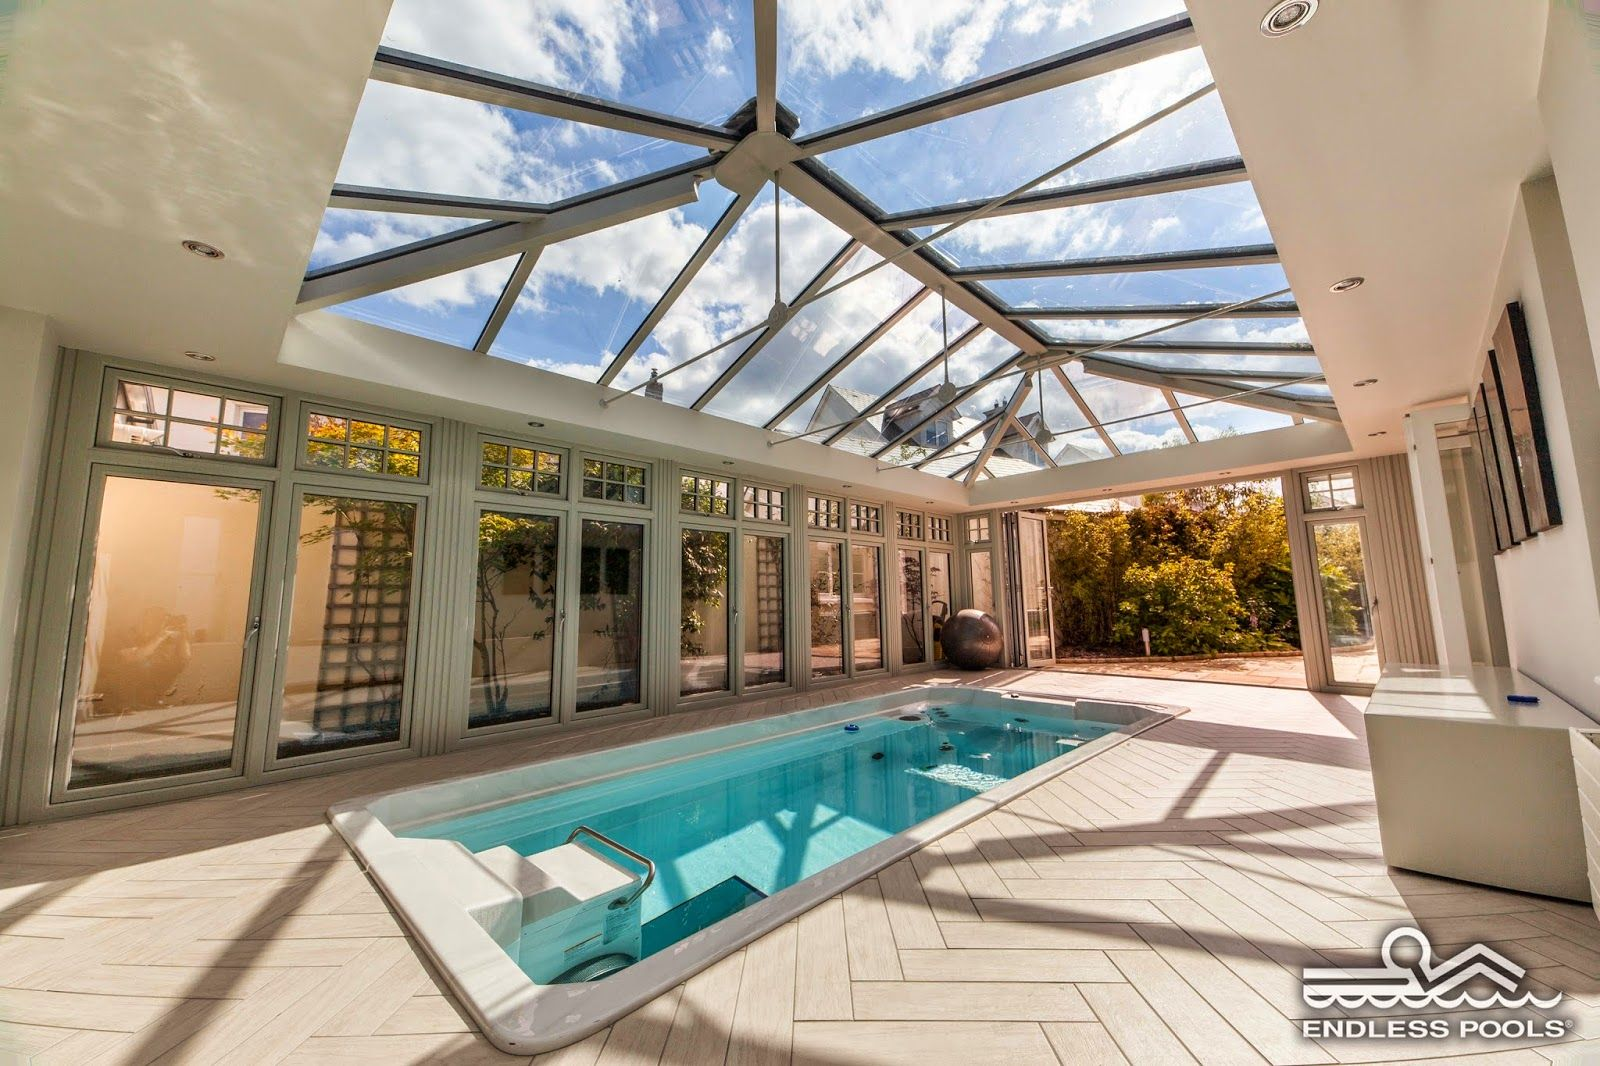 A Conservatory Installation Of An Endless Pool Swim Spa In County Dublin Ireland For More